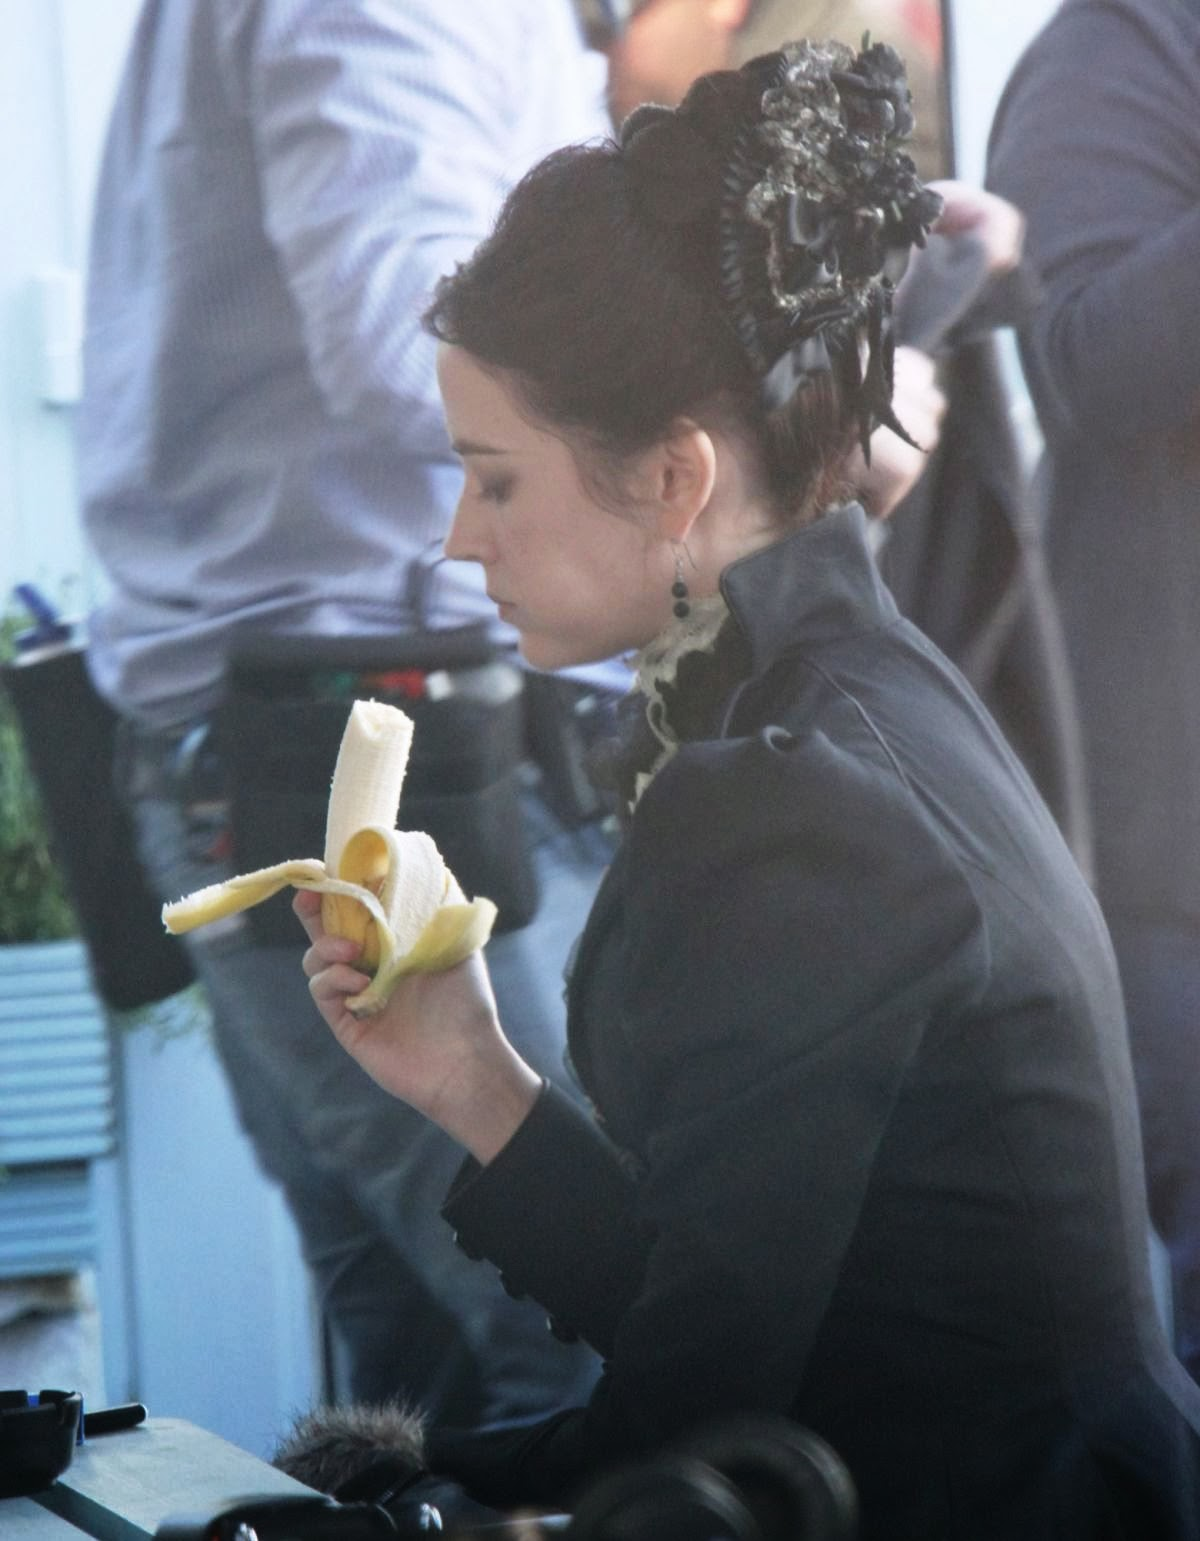 http://3.bp.blogspot.com/-jCxOFr5QYTk/Ut2KYs0cdYI/AAAAAAAAQhk/Jo3klEhwbUY/s1600/eva-green-on-the-set-of-penny-dreadful-in-ireland_6.jpg